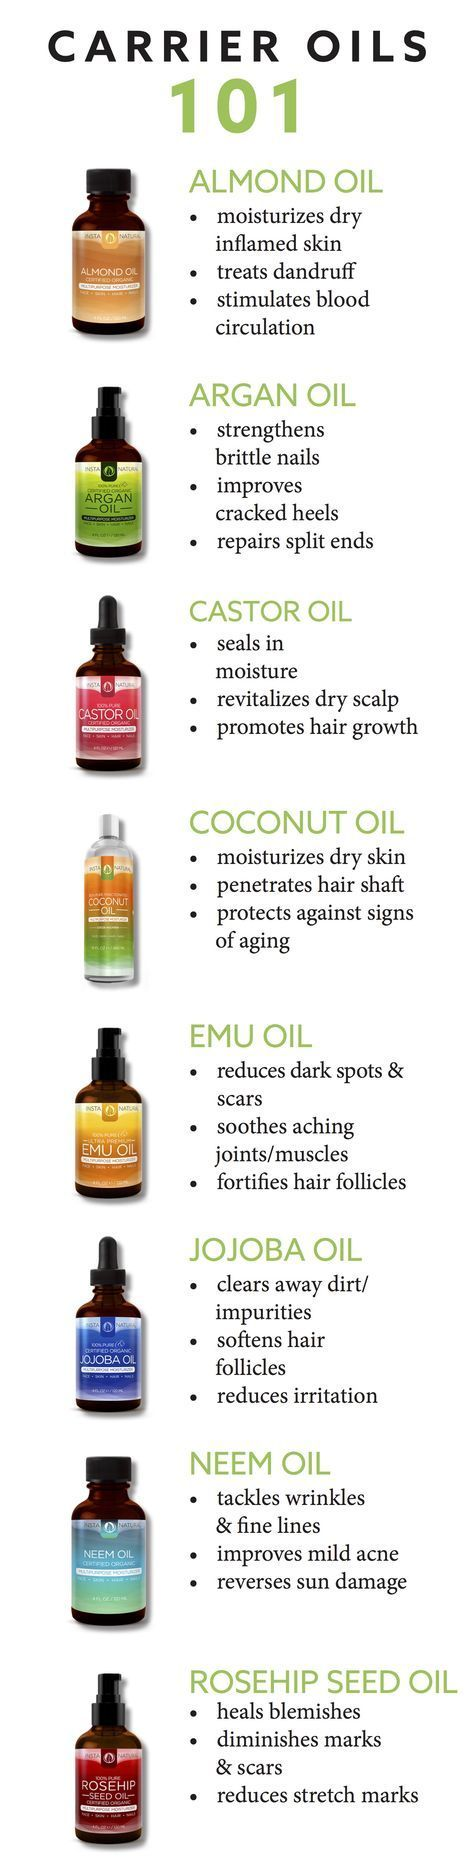 Discover all the amazing benefits of our carrier oils. 20% off this weekend only...